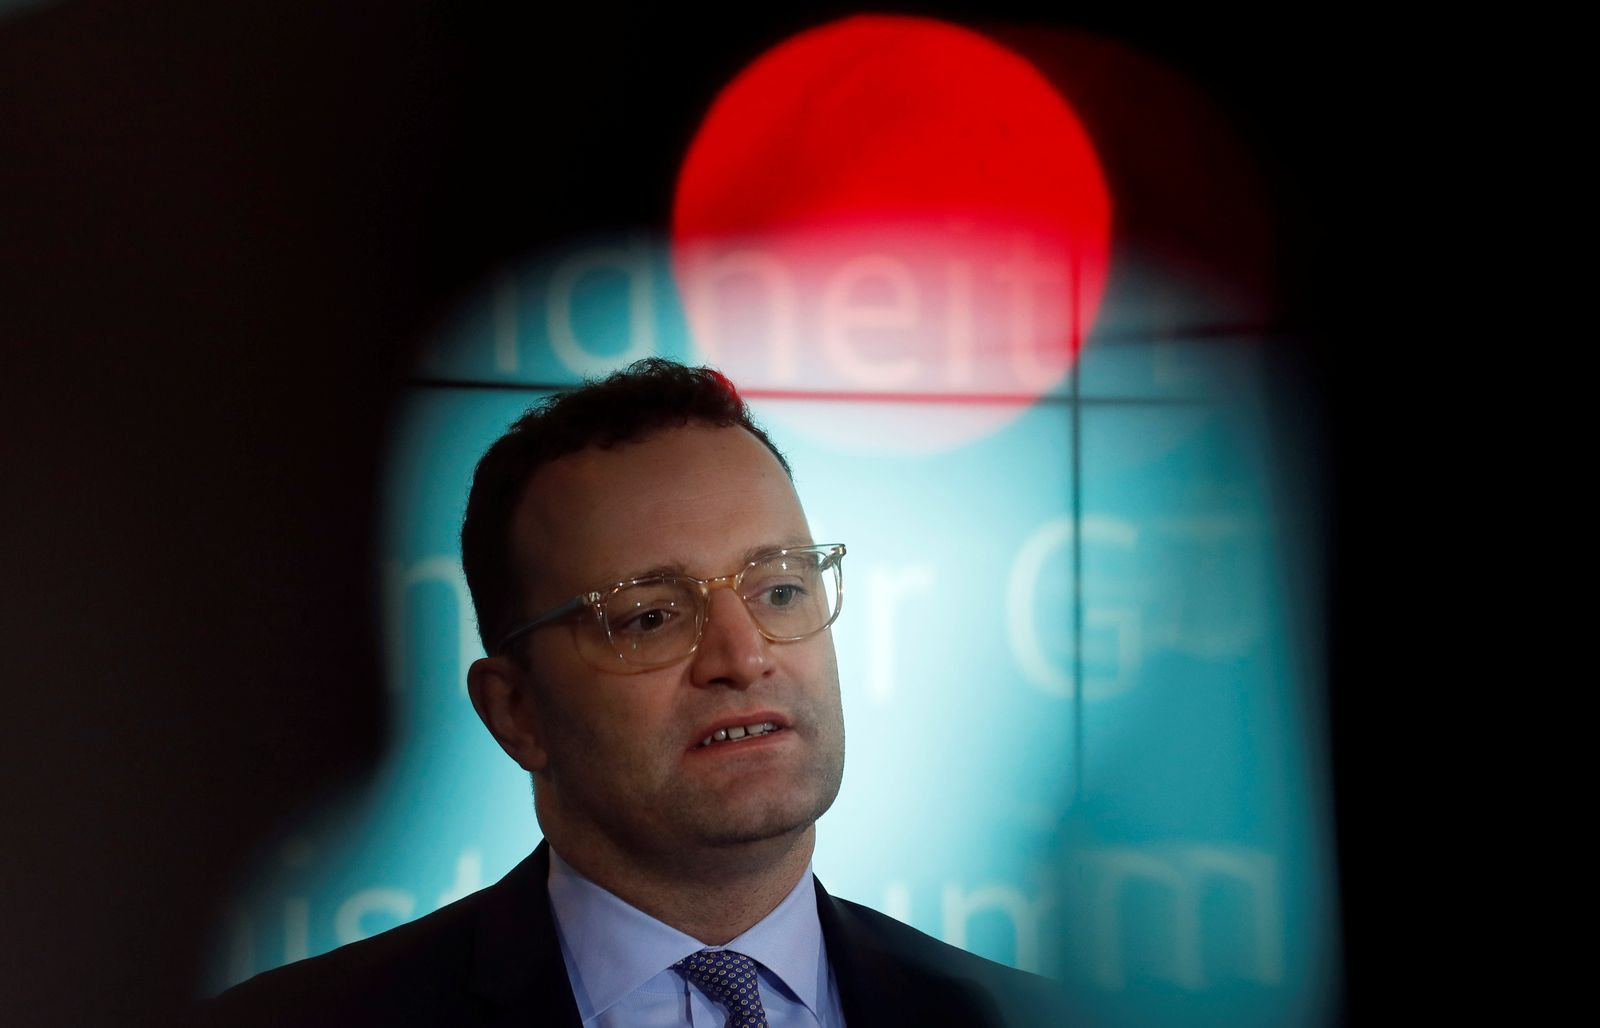 German Health Minister Jens Spahn gives a statement in Berlin